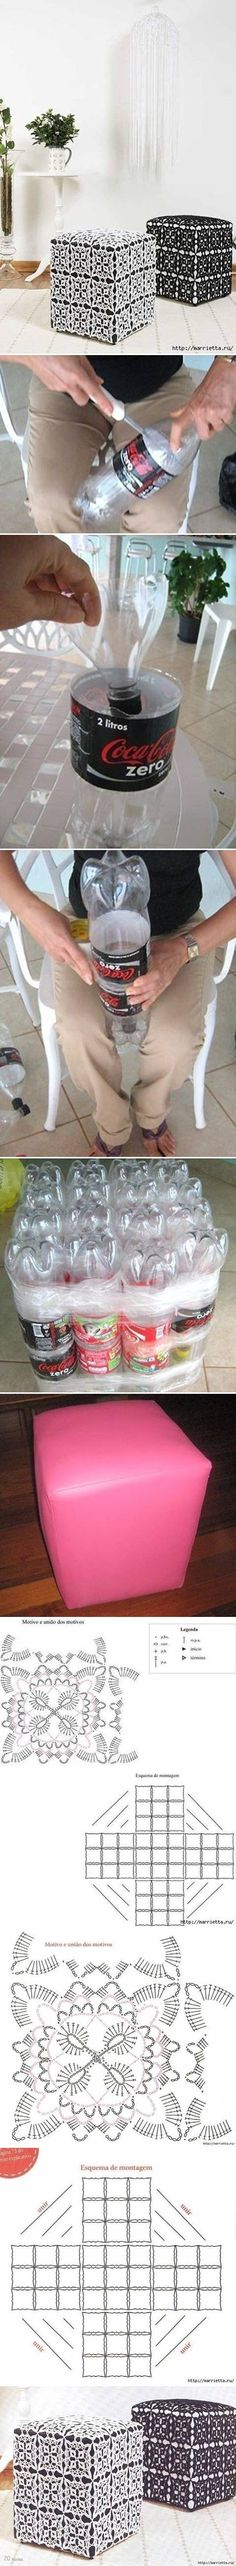 DIY Ottoman Out of Plastic Bottles DIY Projects | UsefulDIY.com